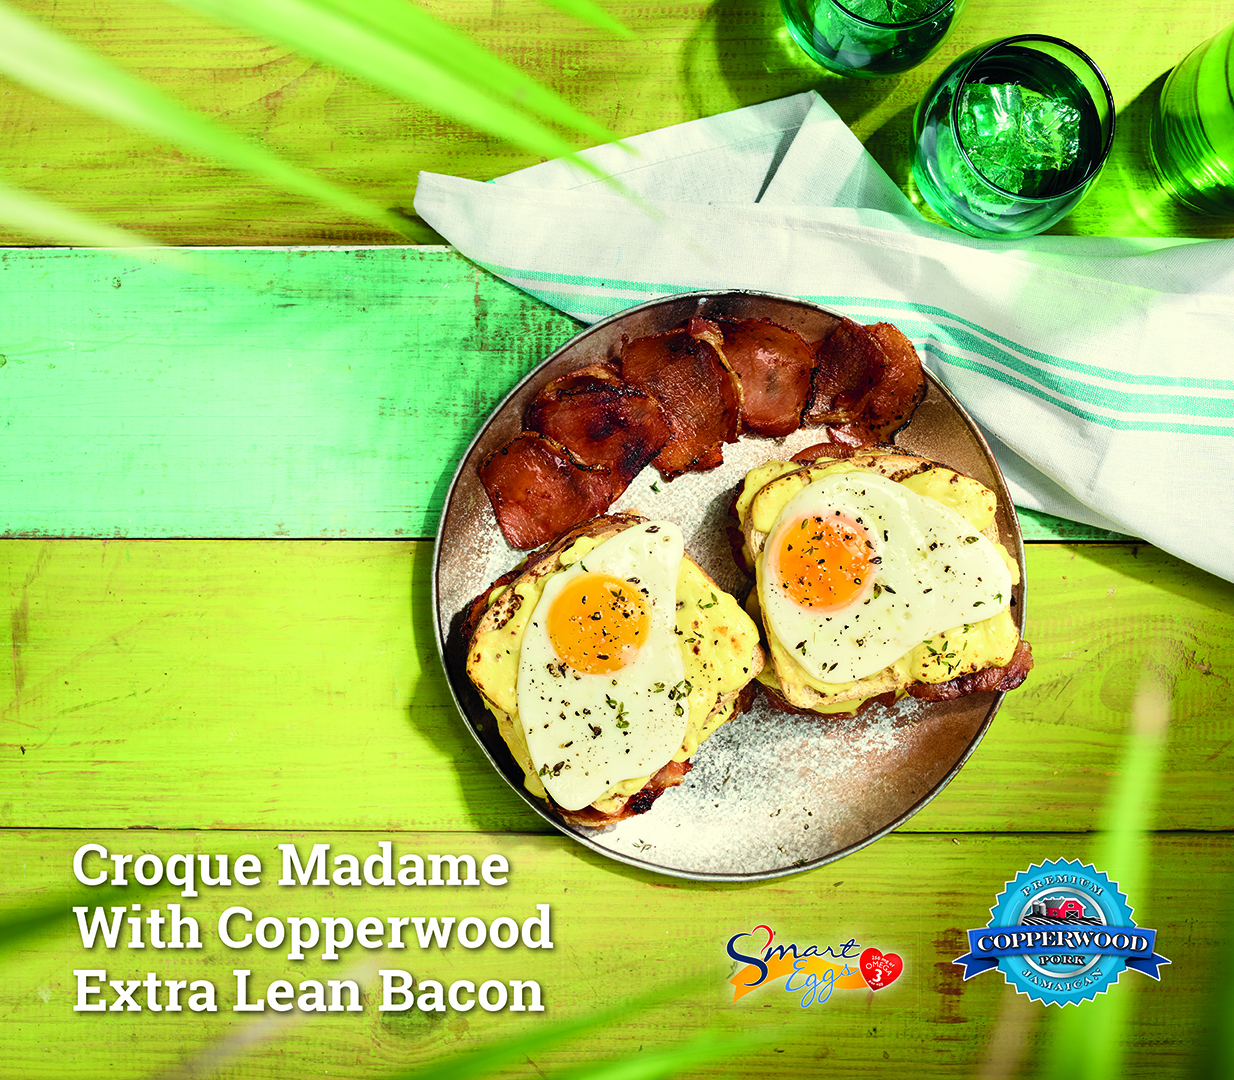 Croque Madame With Copperwood Extra Lean Bacon